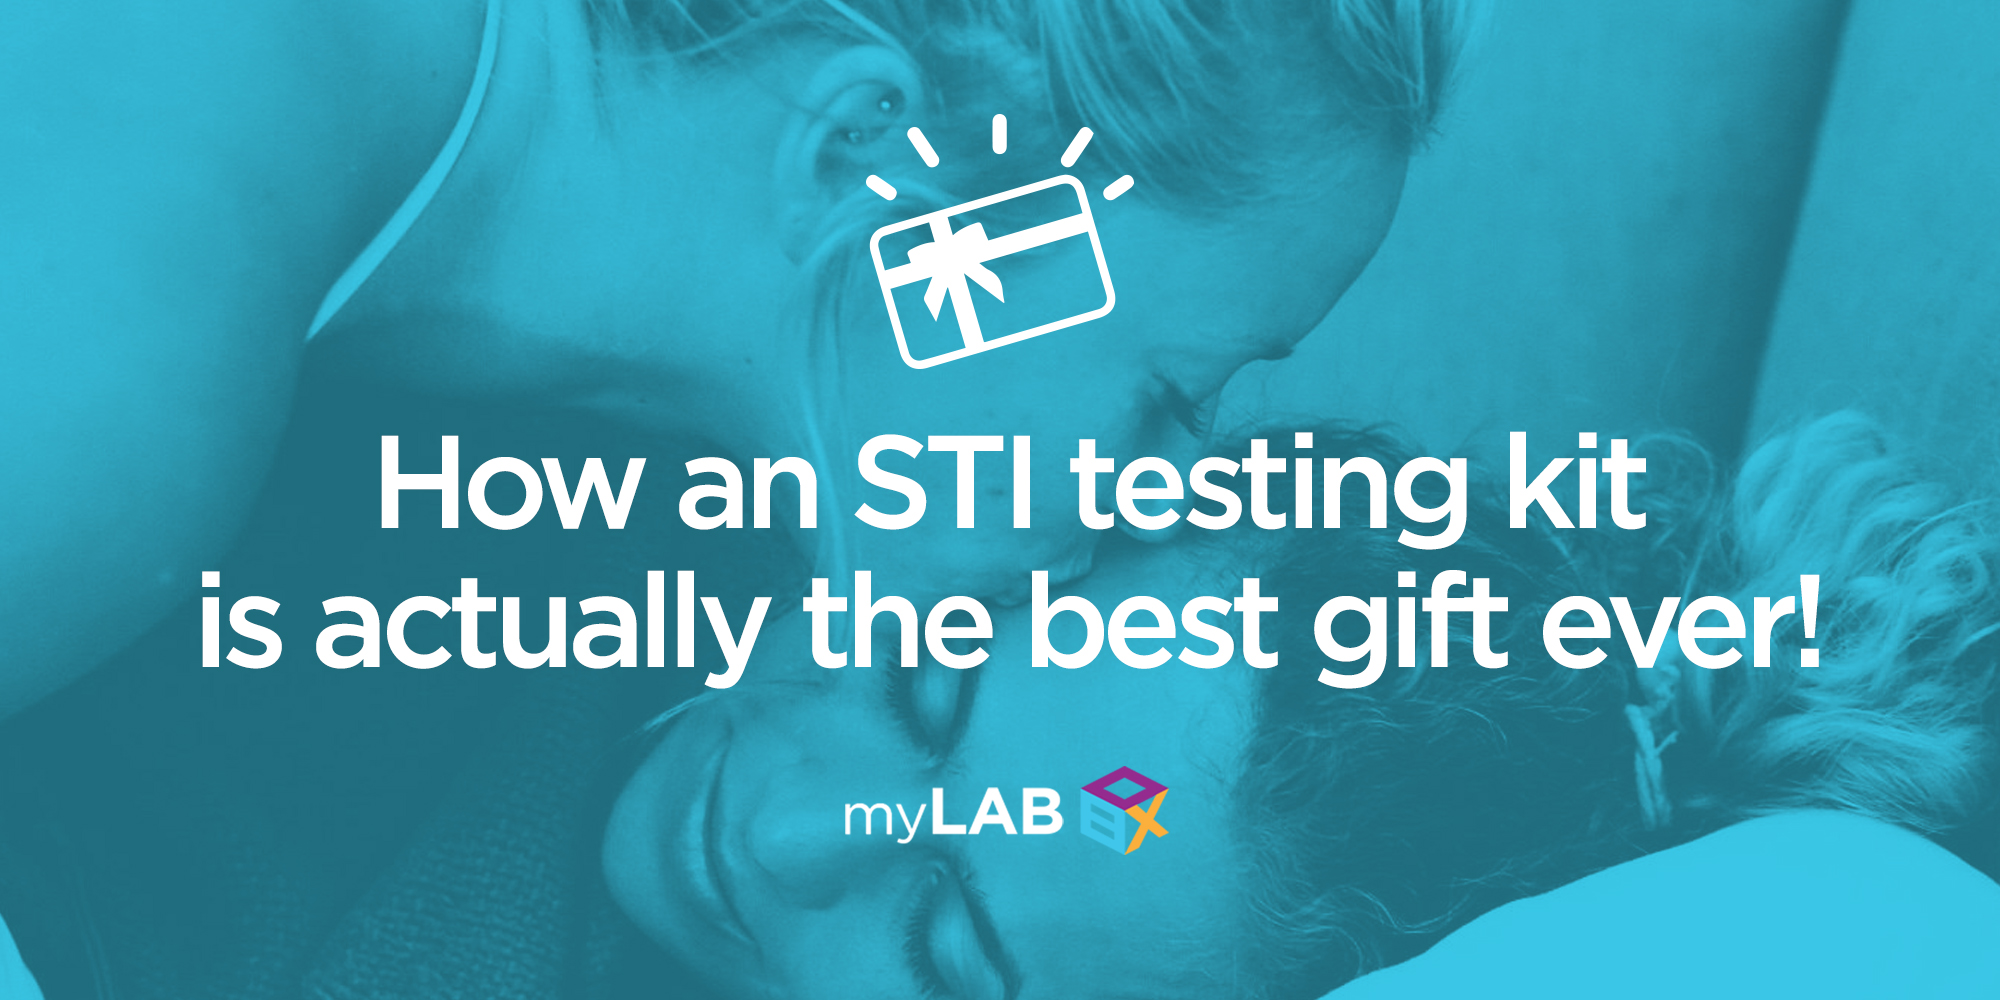 How an STI testing kit is actually the best gift ever